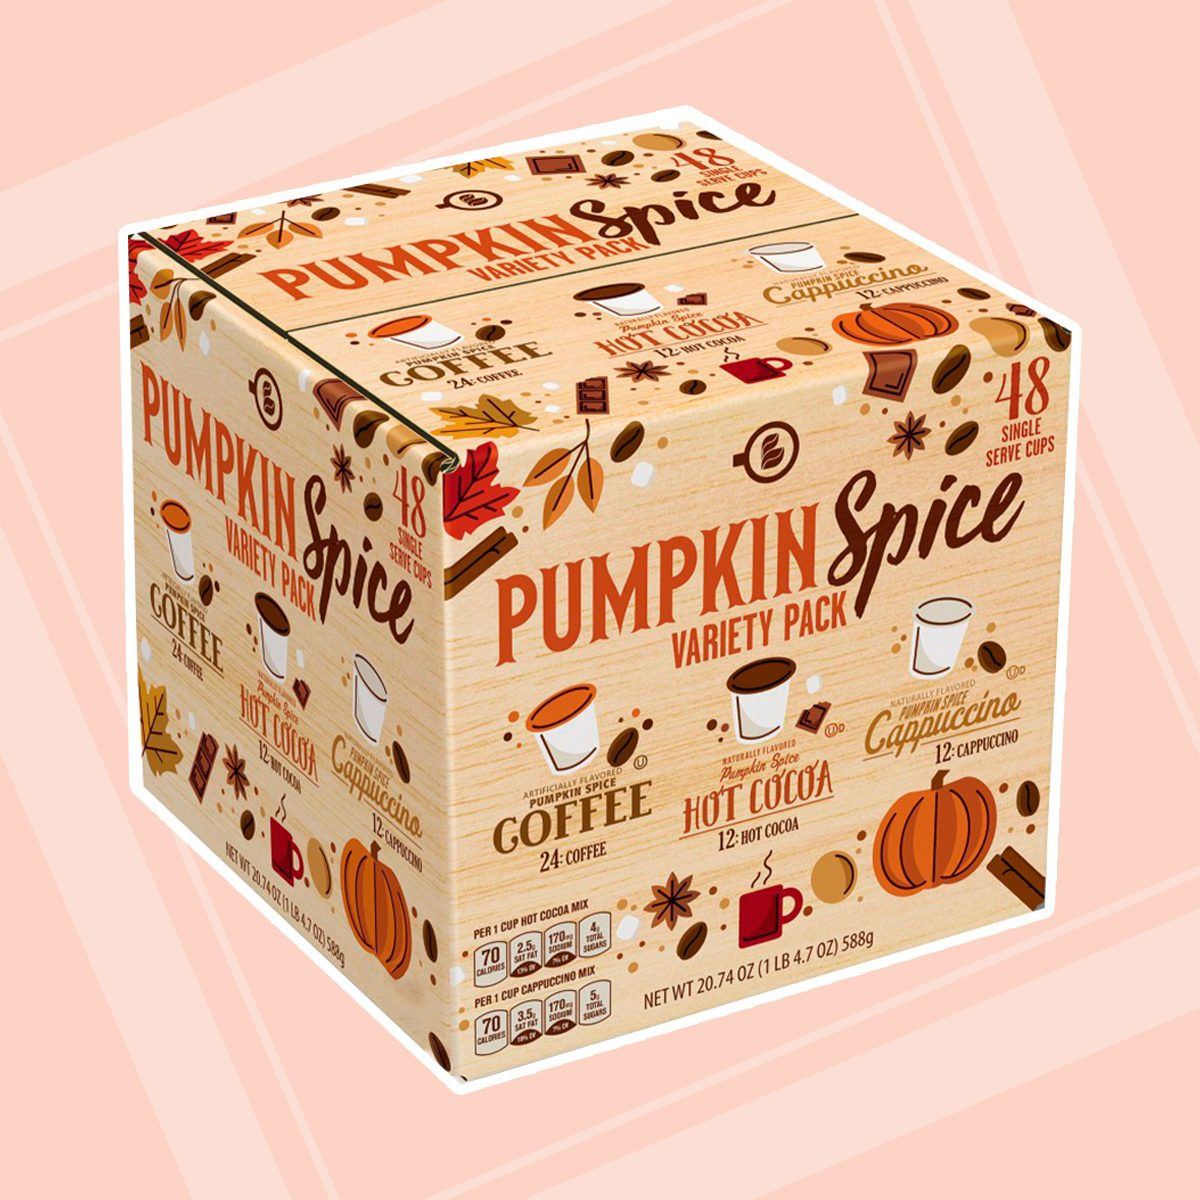 Aldi Pumpkin Spice Variety Pack Coffee